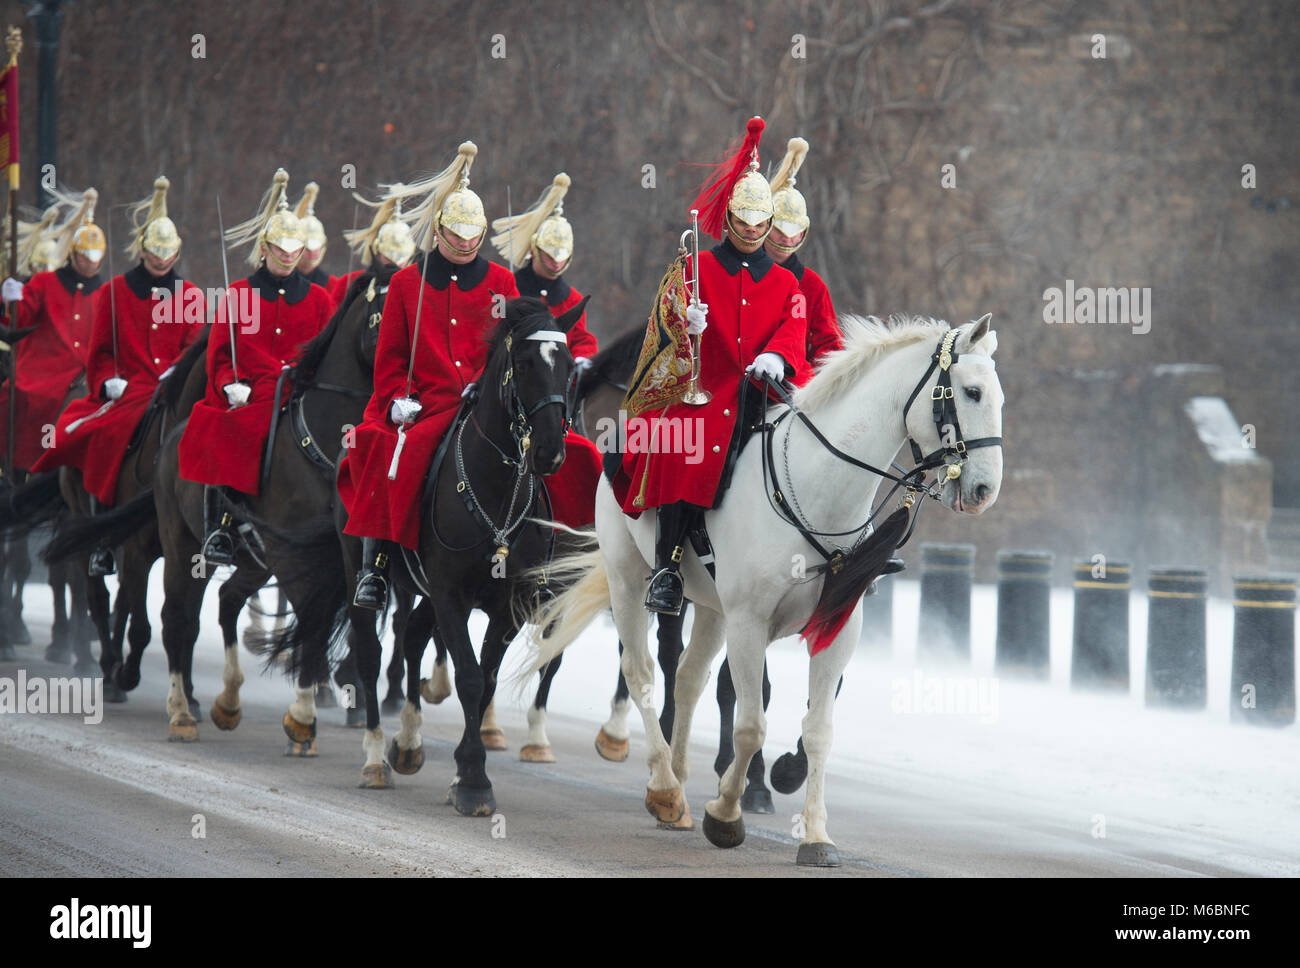 1 March 2018. Life Guards ride through wind blown snow to attend Changing the Guard ceremony at Horse Guards Parade, Stock Photo